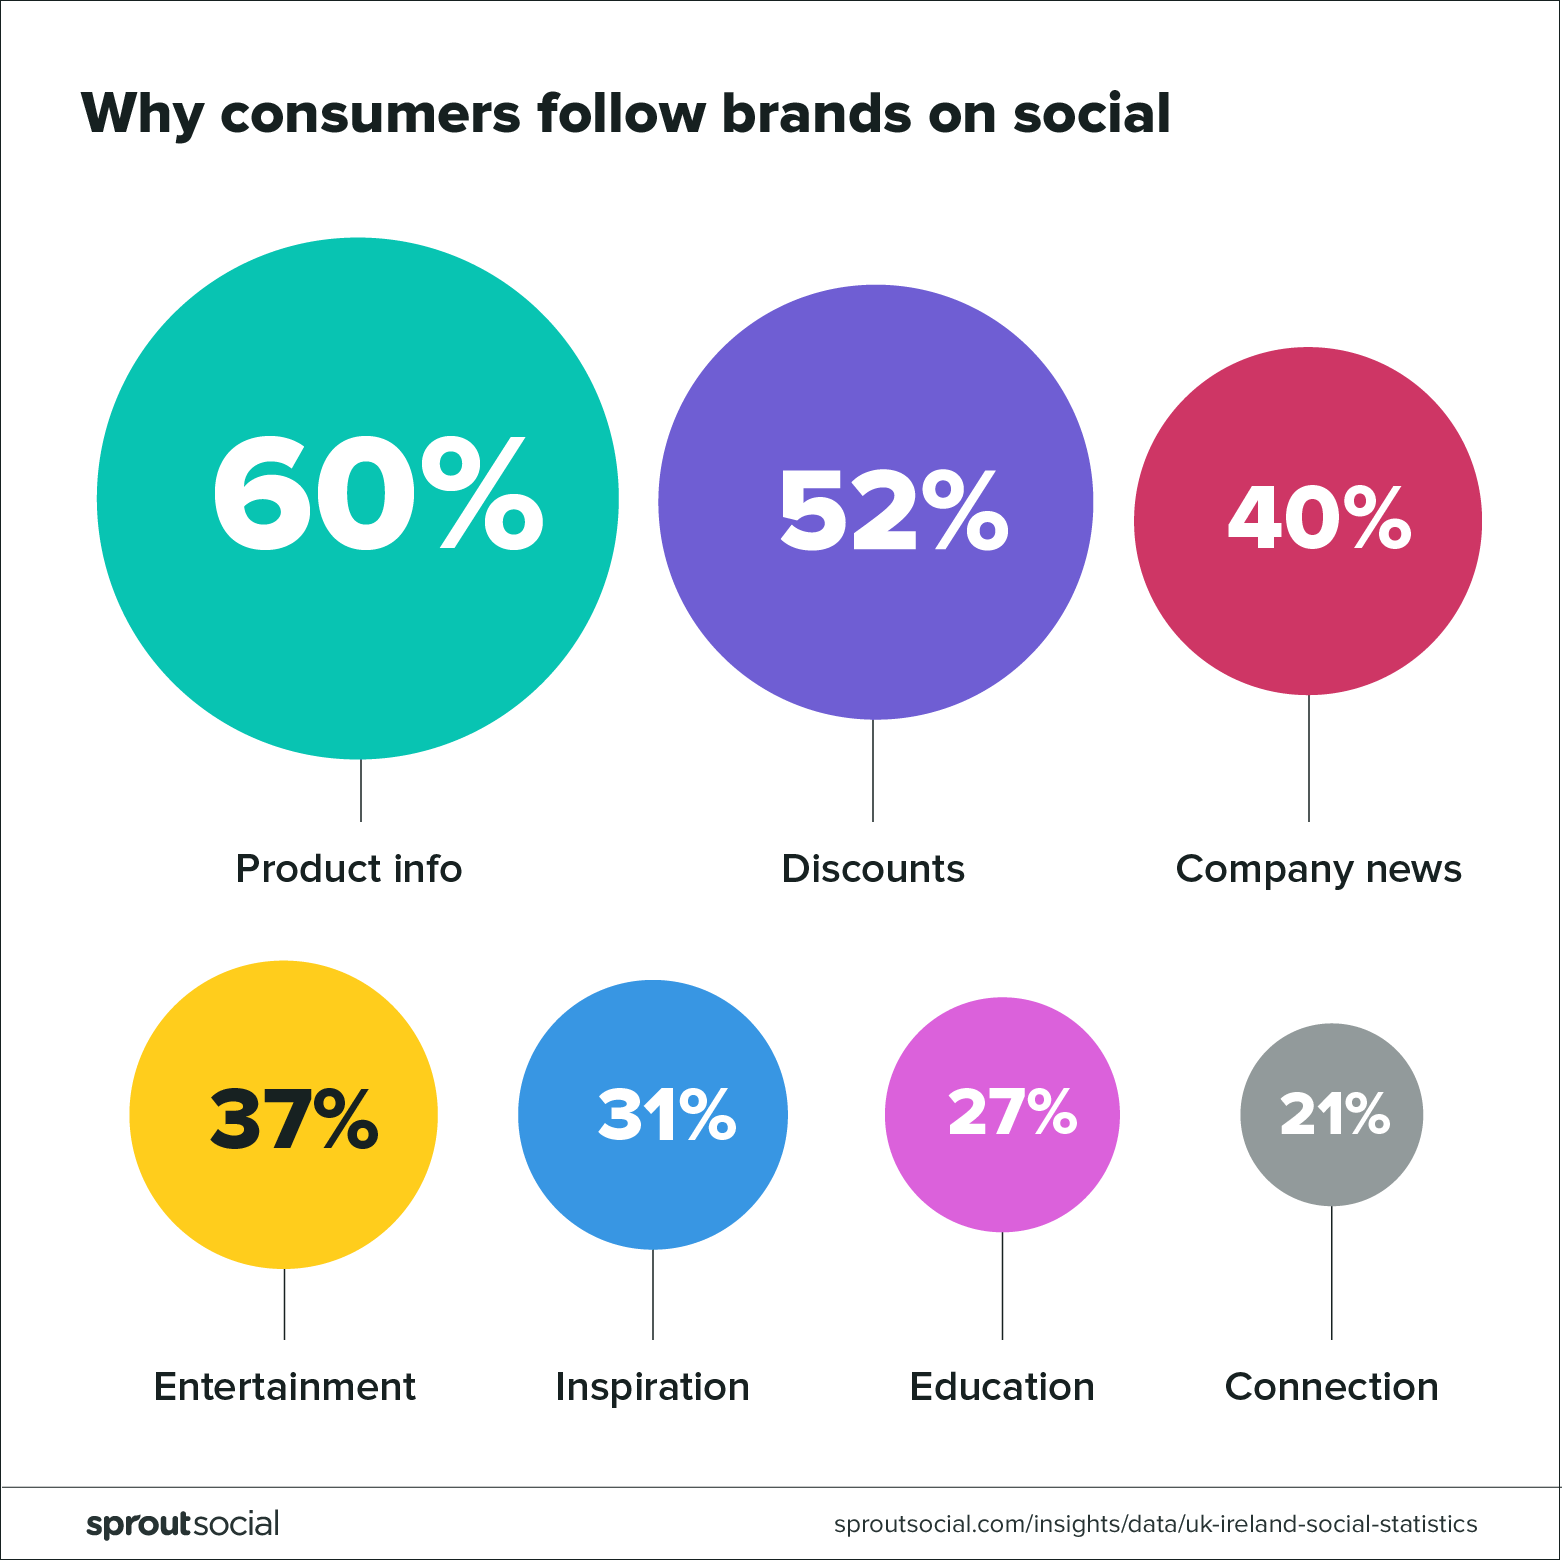 Why consumers follow brands on social